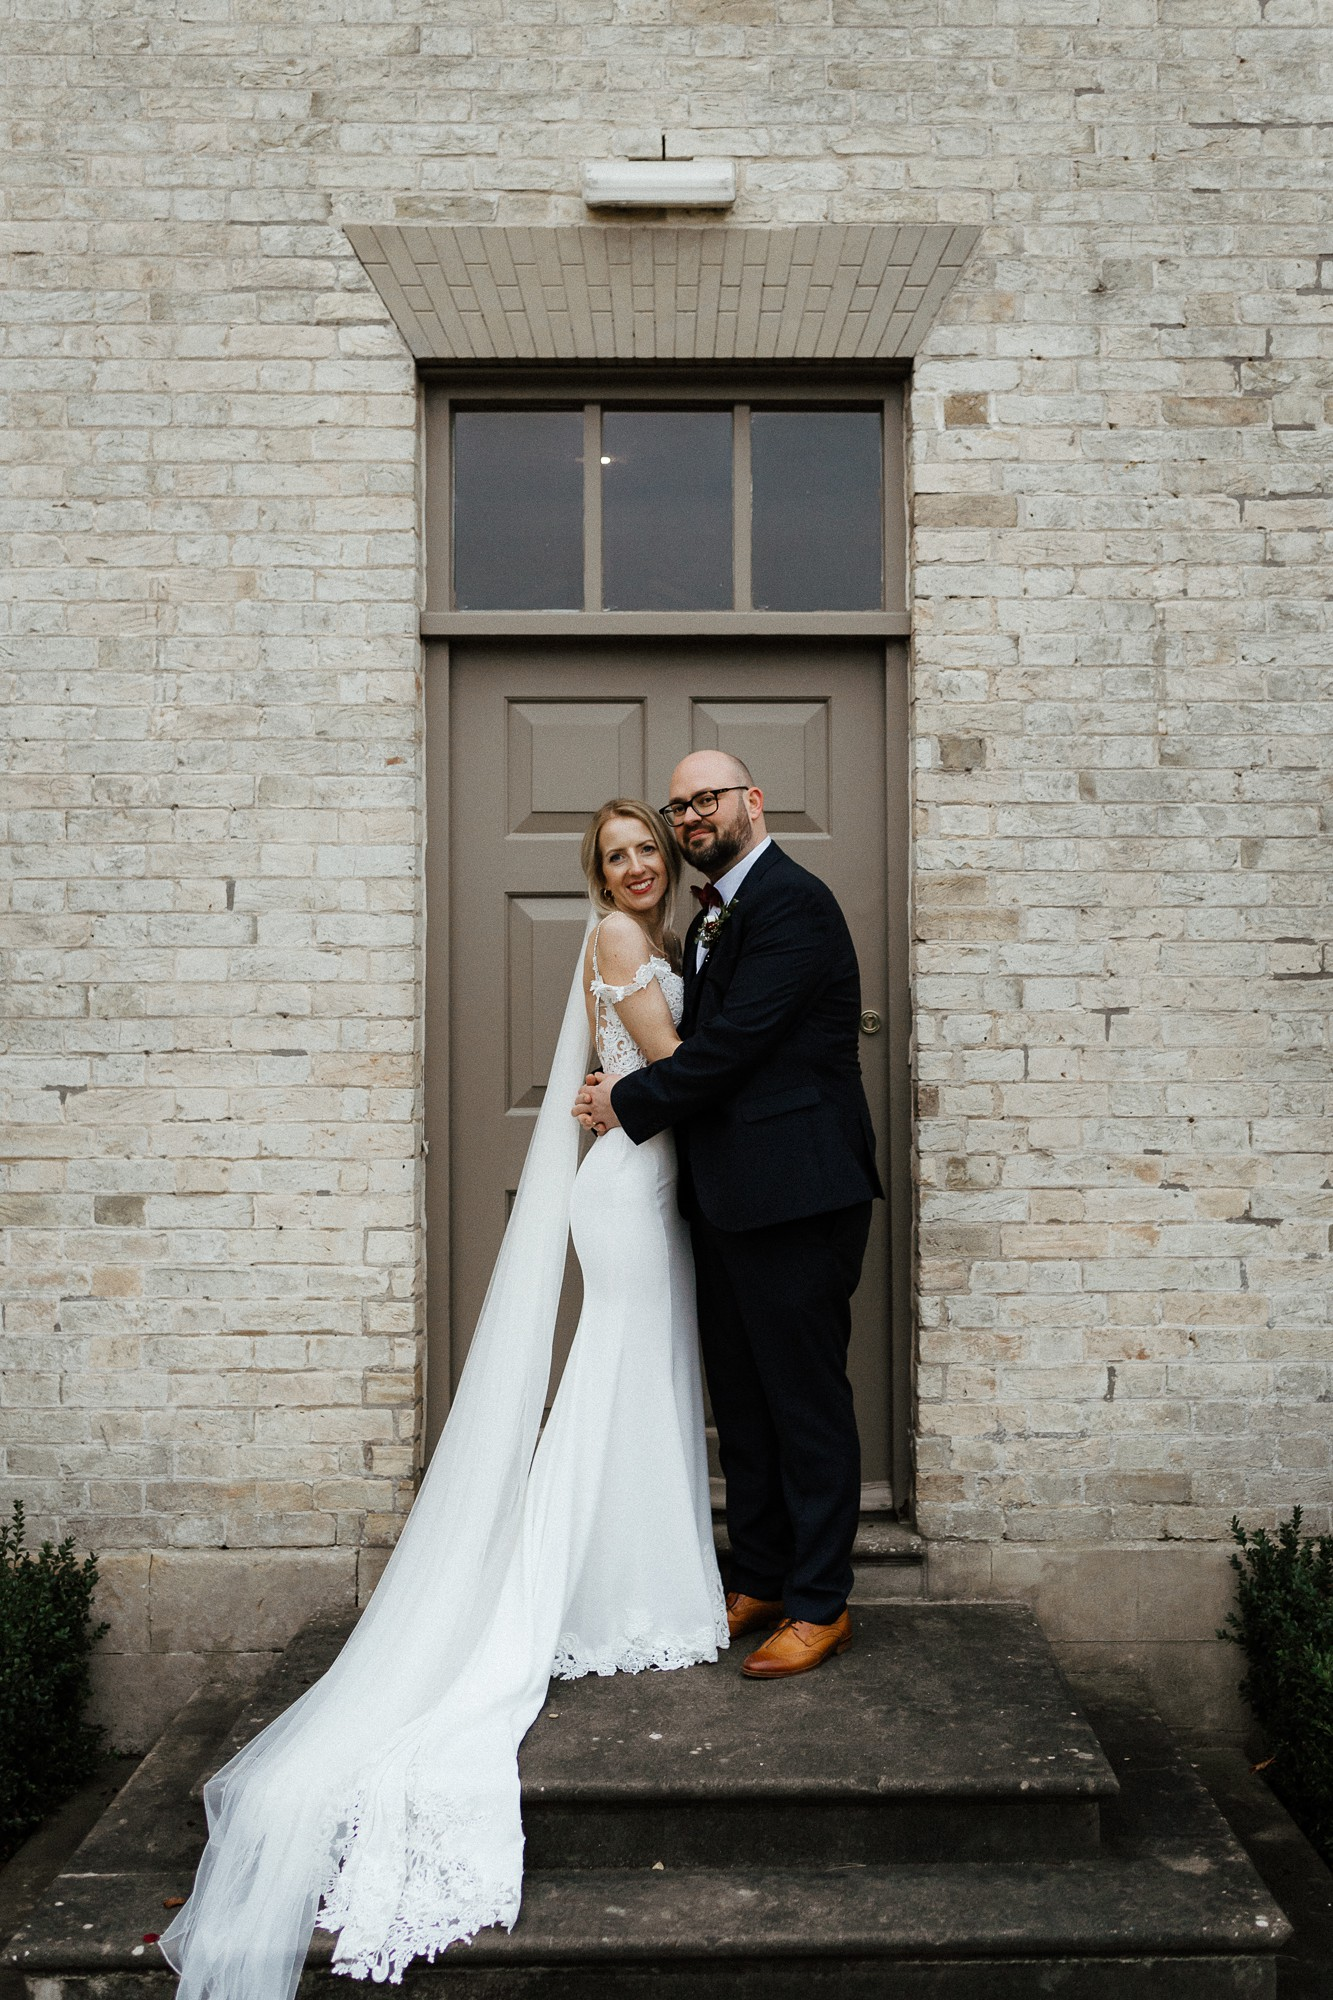 Enzoani bride bohemian winter wedding - An Enzoani Dress + Blue Shoes for a Modern Bohemian Country House Party Wedding in Wintertime